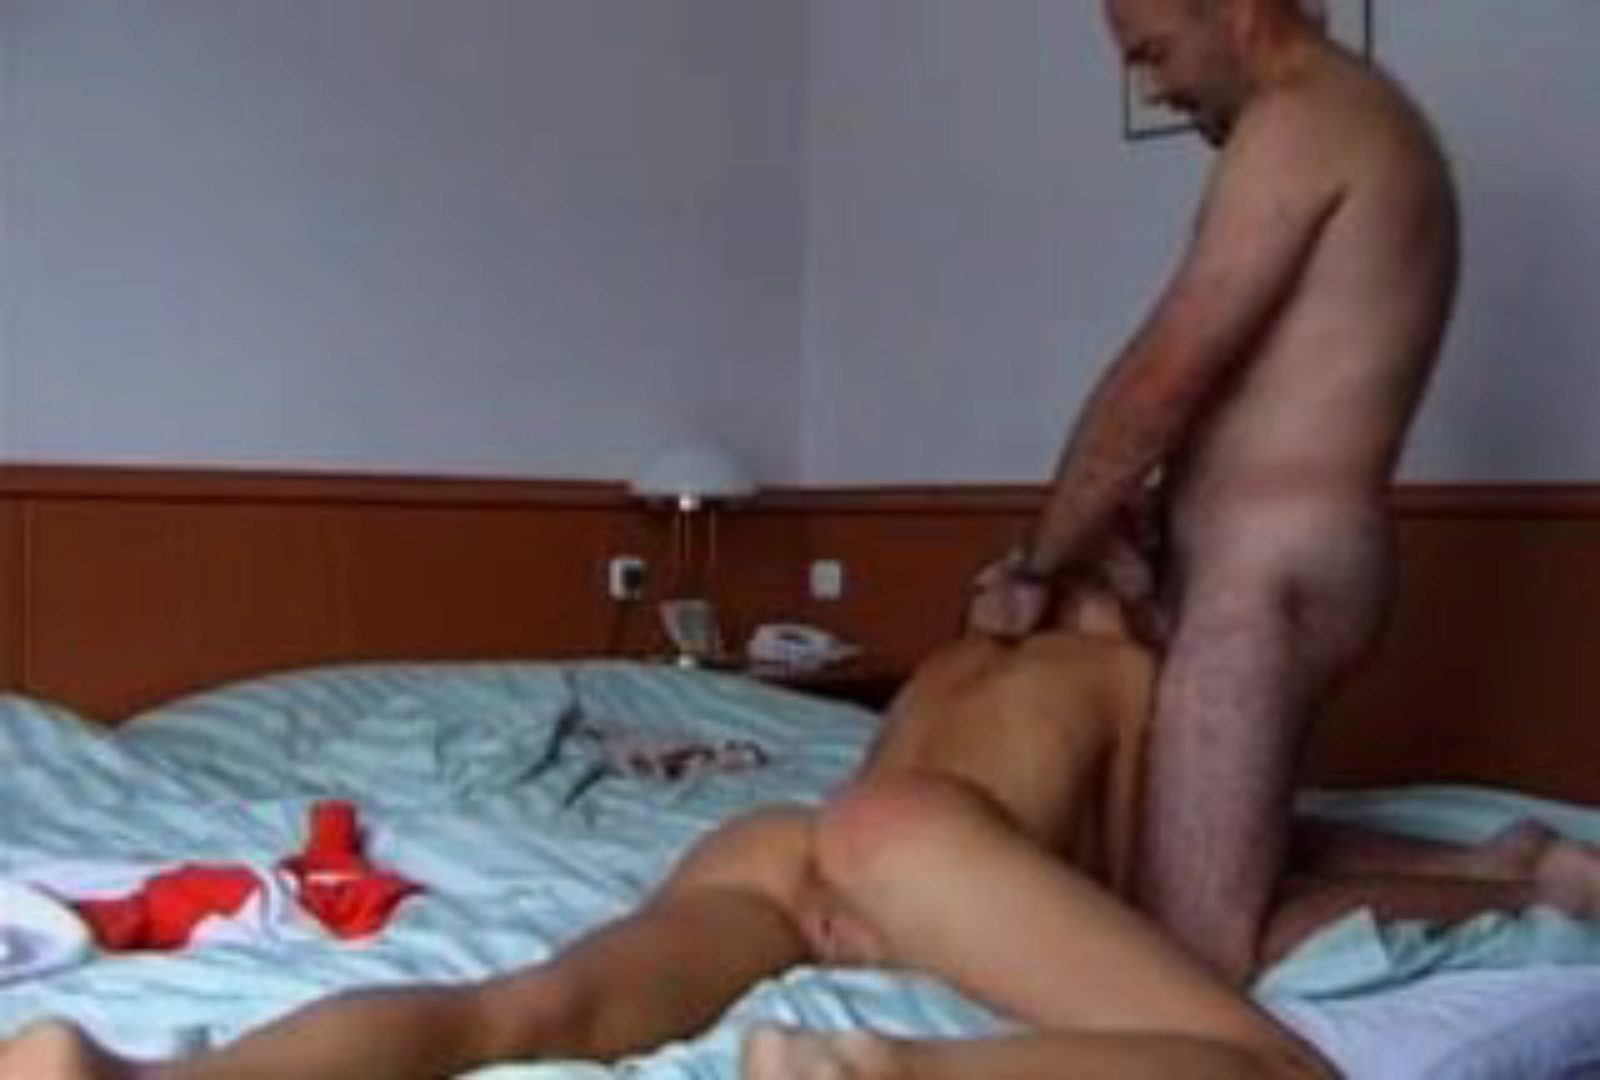 Rough Sex & Anal: Free Sex Xxxn Porn Video cc - xHamster Watch Rough Sex & Anal tube hookup movie for free on xHamster, with the greatest collection of Sex Xxxn, Xxxn Sex, Spanking & Utube Sex porno video vignettes